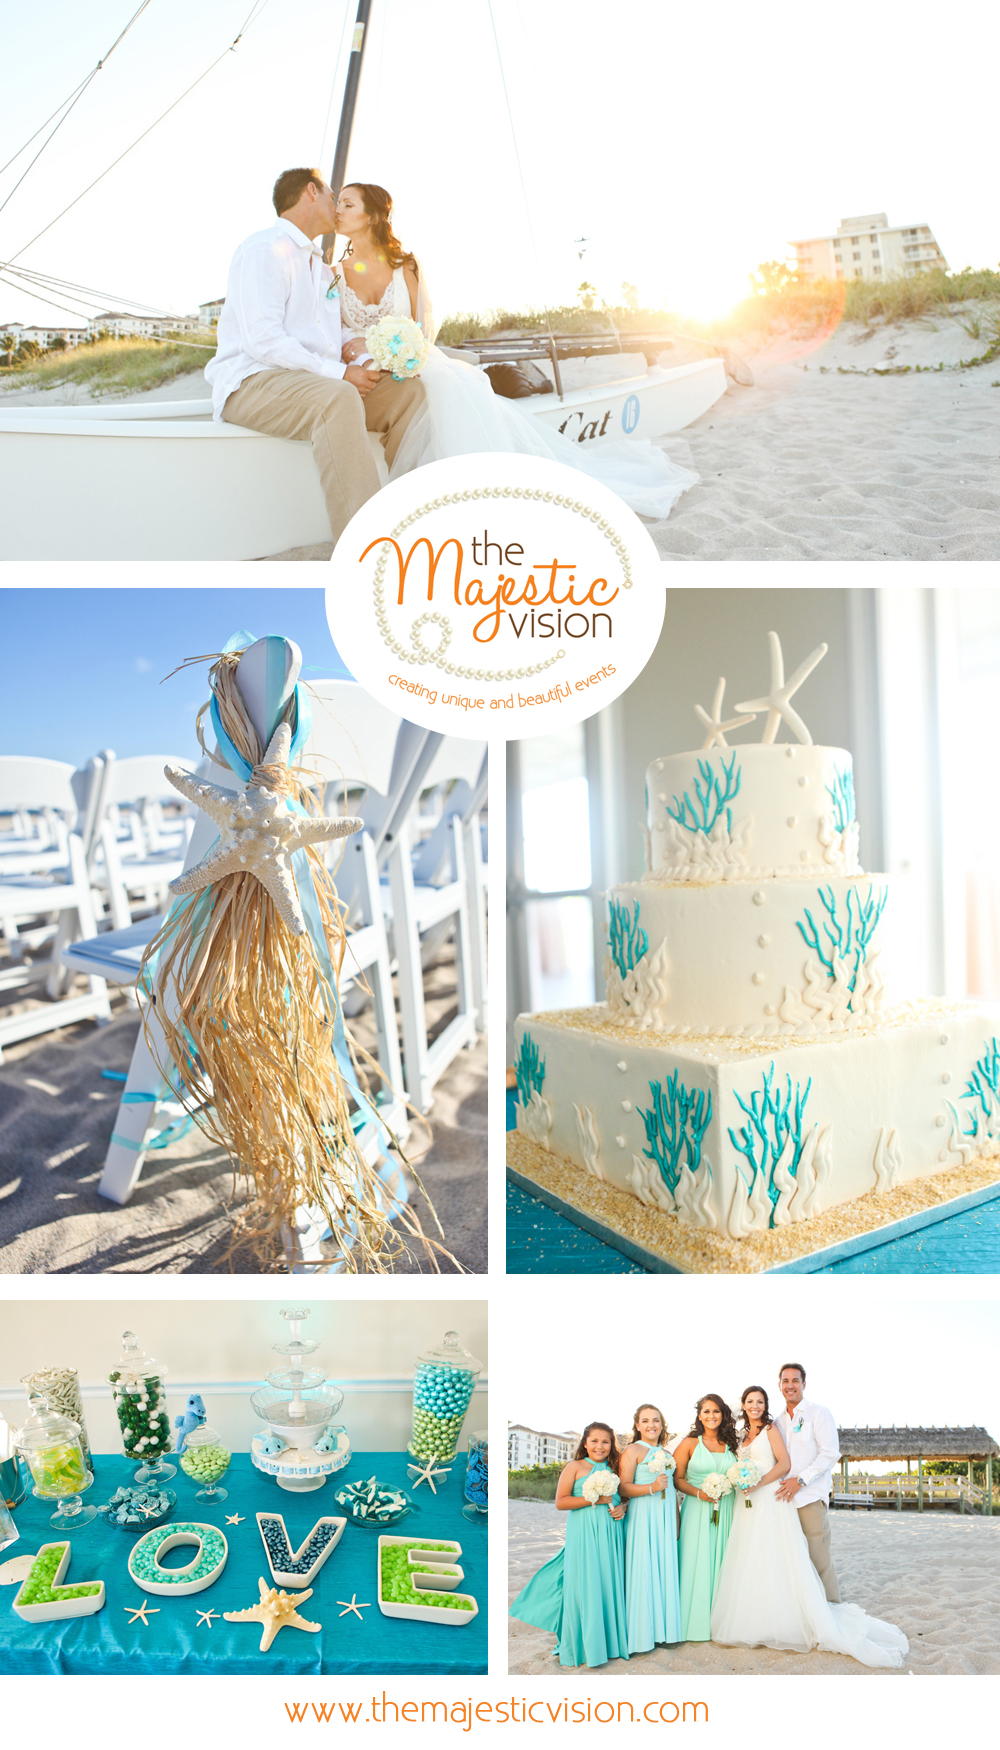 Whimsical and Elegant Beach Wedding | The Majestic Vision Wedding Planning | Palm Beach Shores in Palm Beach, FL | www.themajesticvision.com | Krystal Zaskey Photography